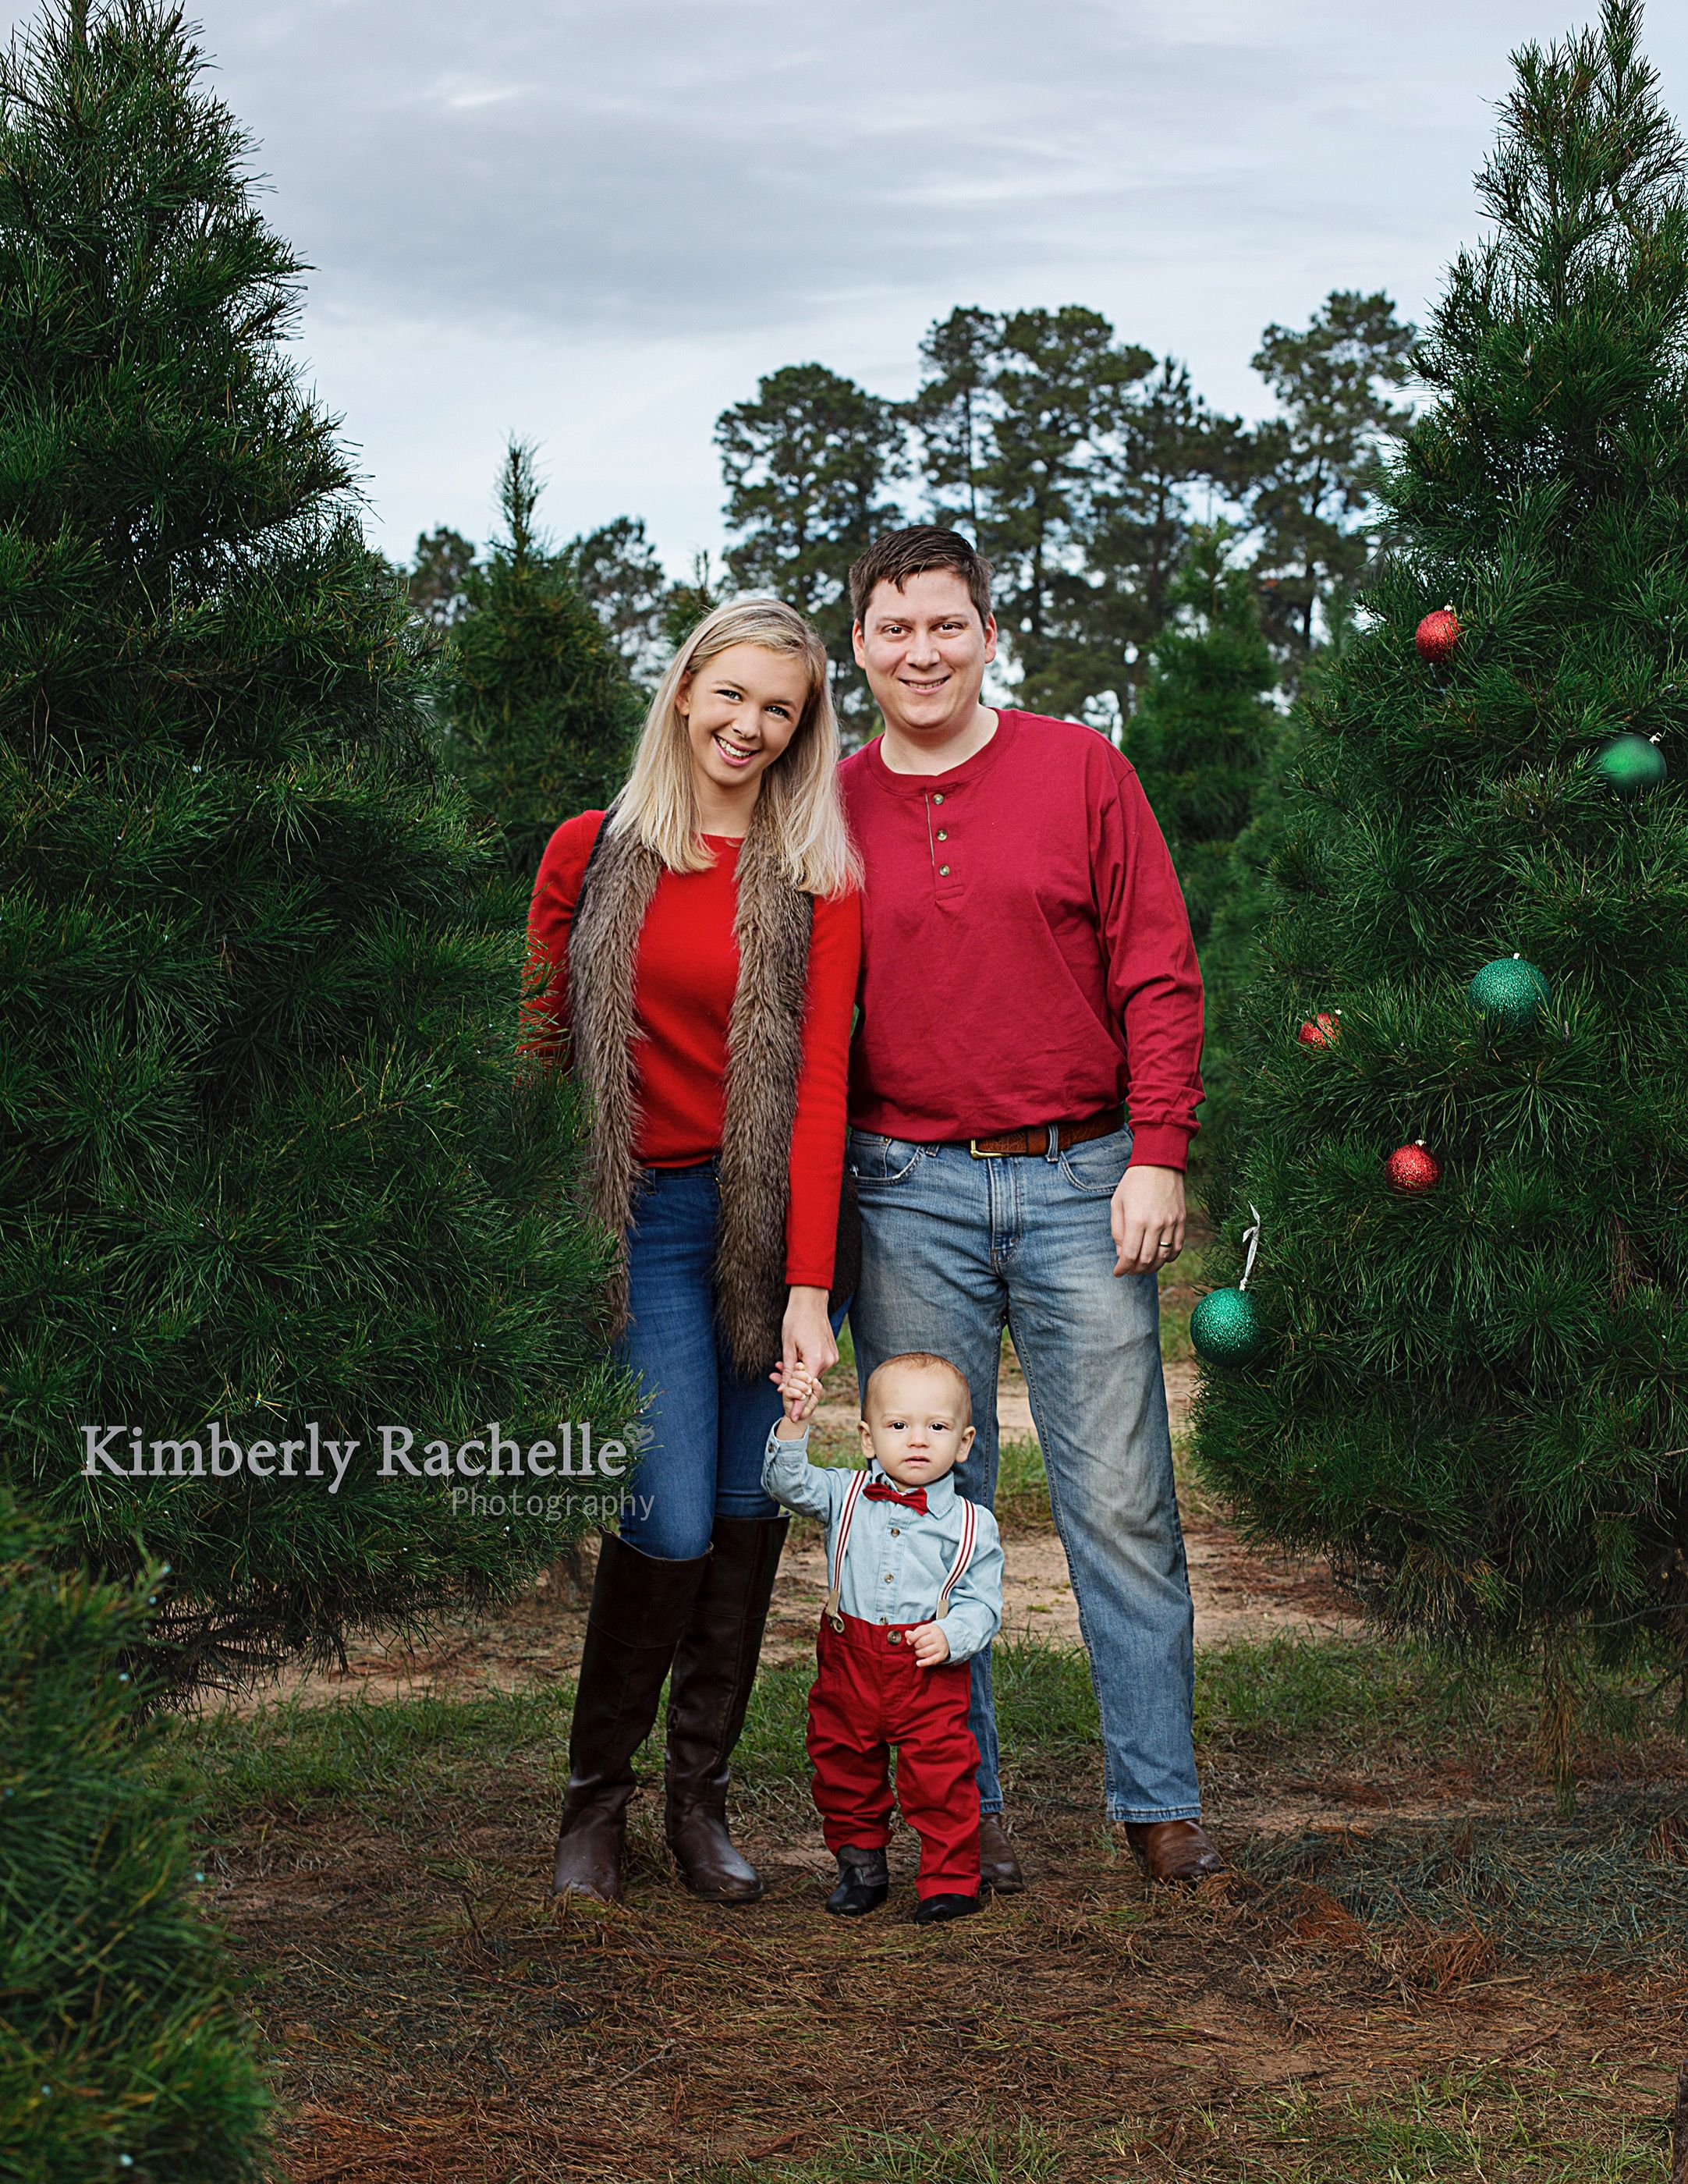 Christmas Tree Farm Photography.Family Christmas Tree Farm Photography Session With Baby